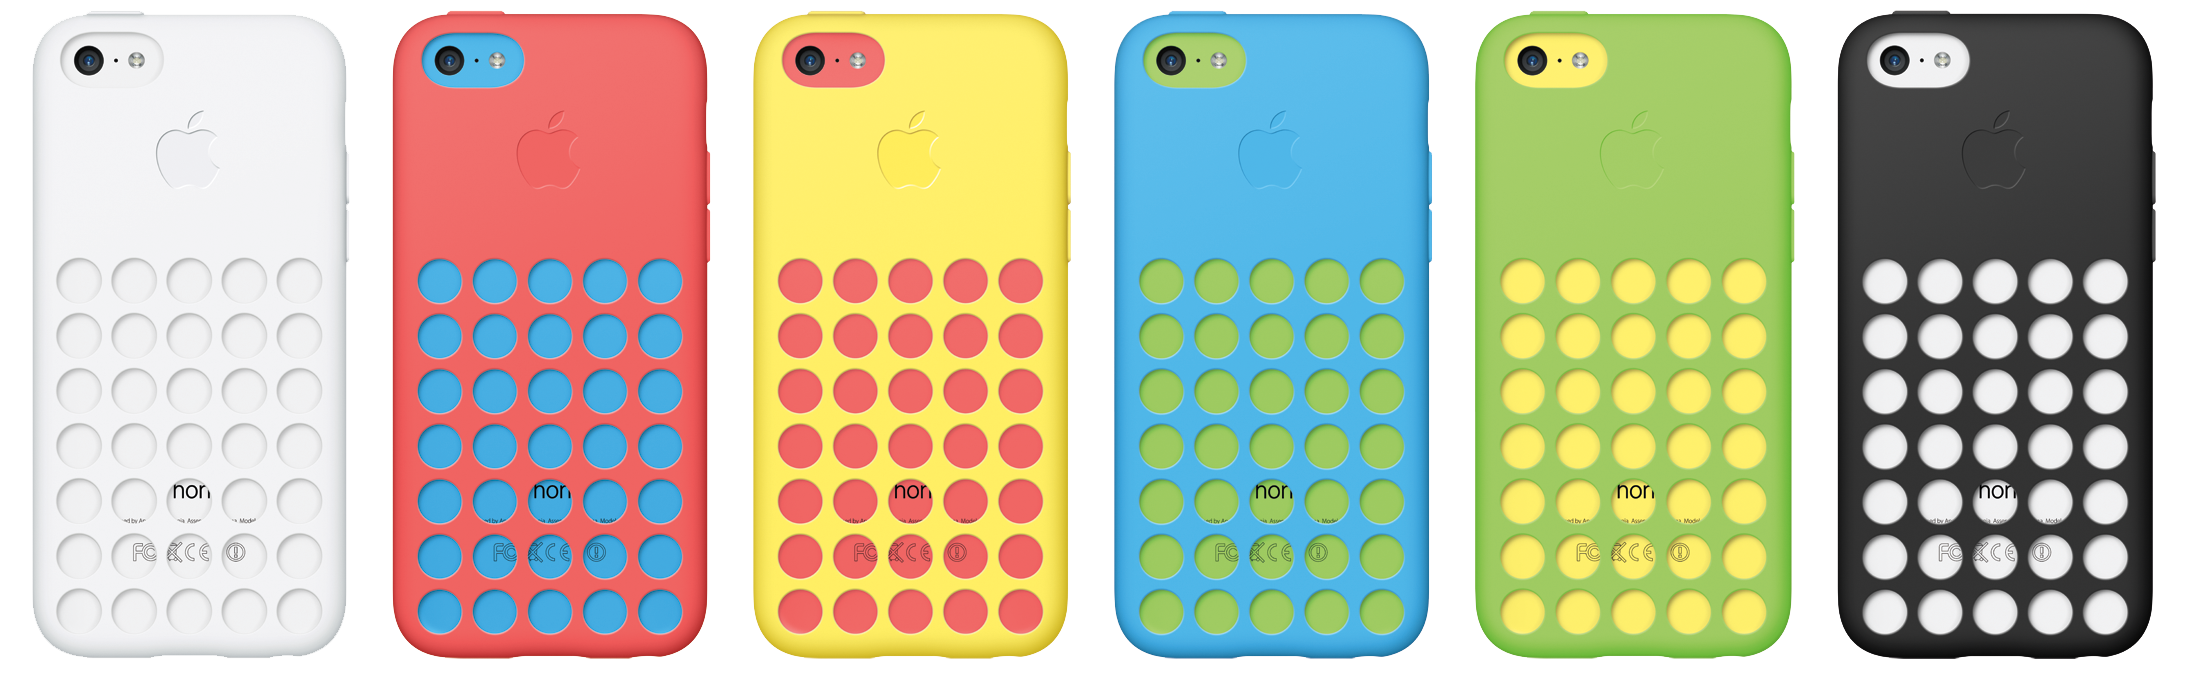 iPhone5c_Backs-Cases_PRINT.png